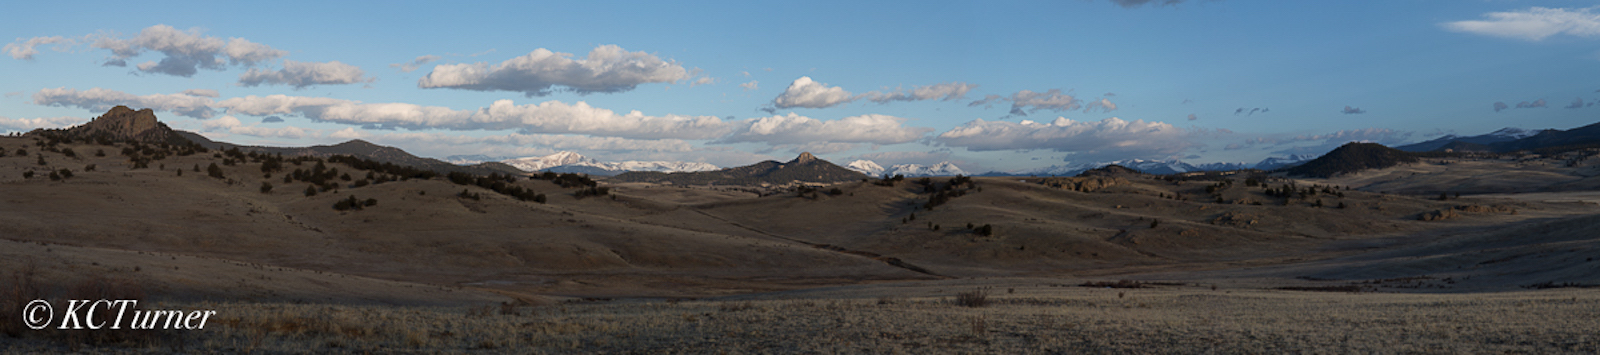 North South Park #3, Colorado Mountains, Fine Art Photography, Lost Park, South Park, Landscapes, Trails, , photo